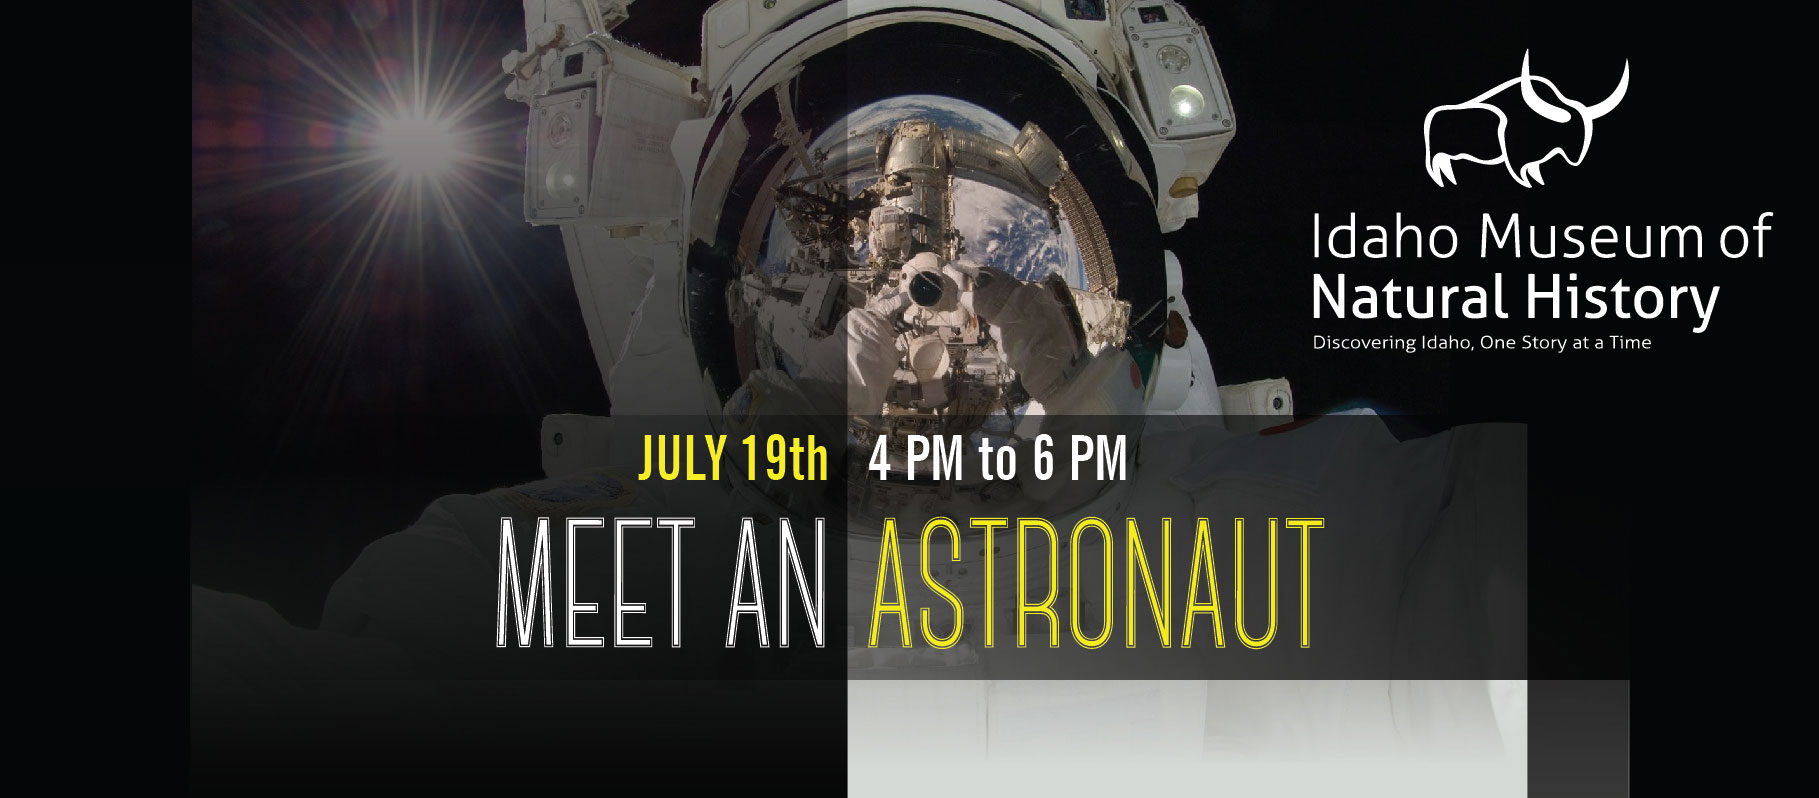 Idaho Museum of Natural History Discovering Idaho One Story at a Time Meet an Astronaut July 19 4 p.m. to 6 p.m.